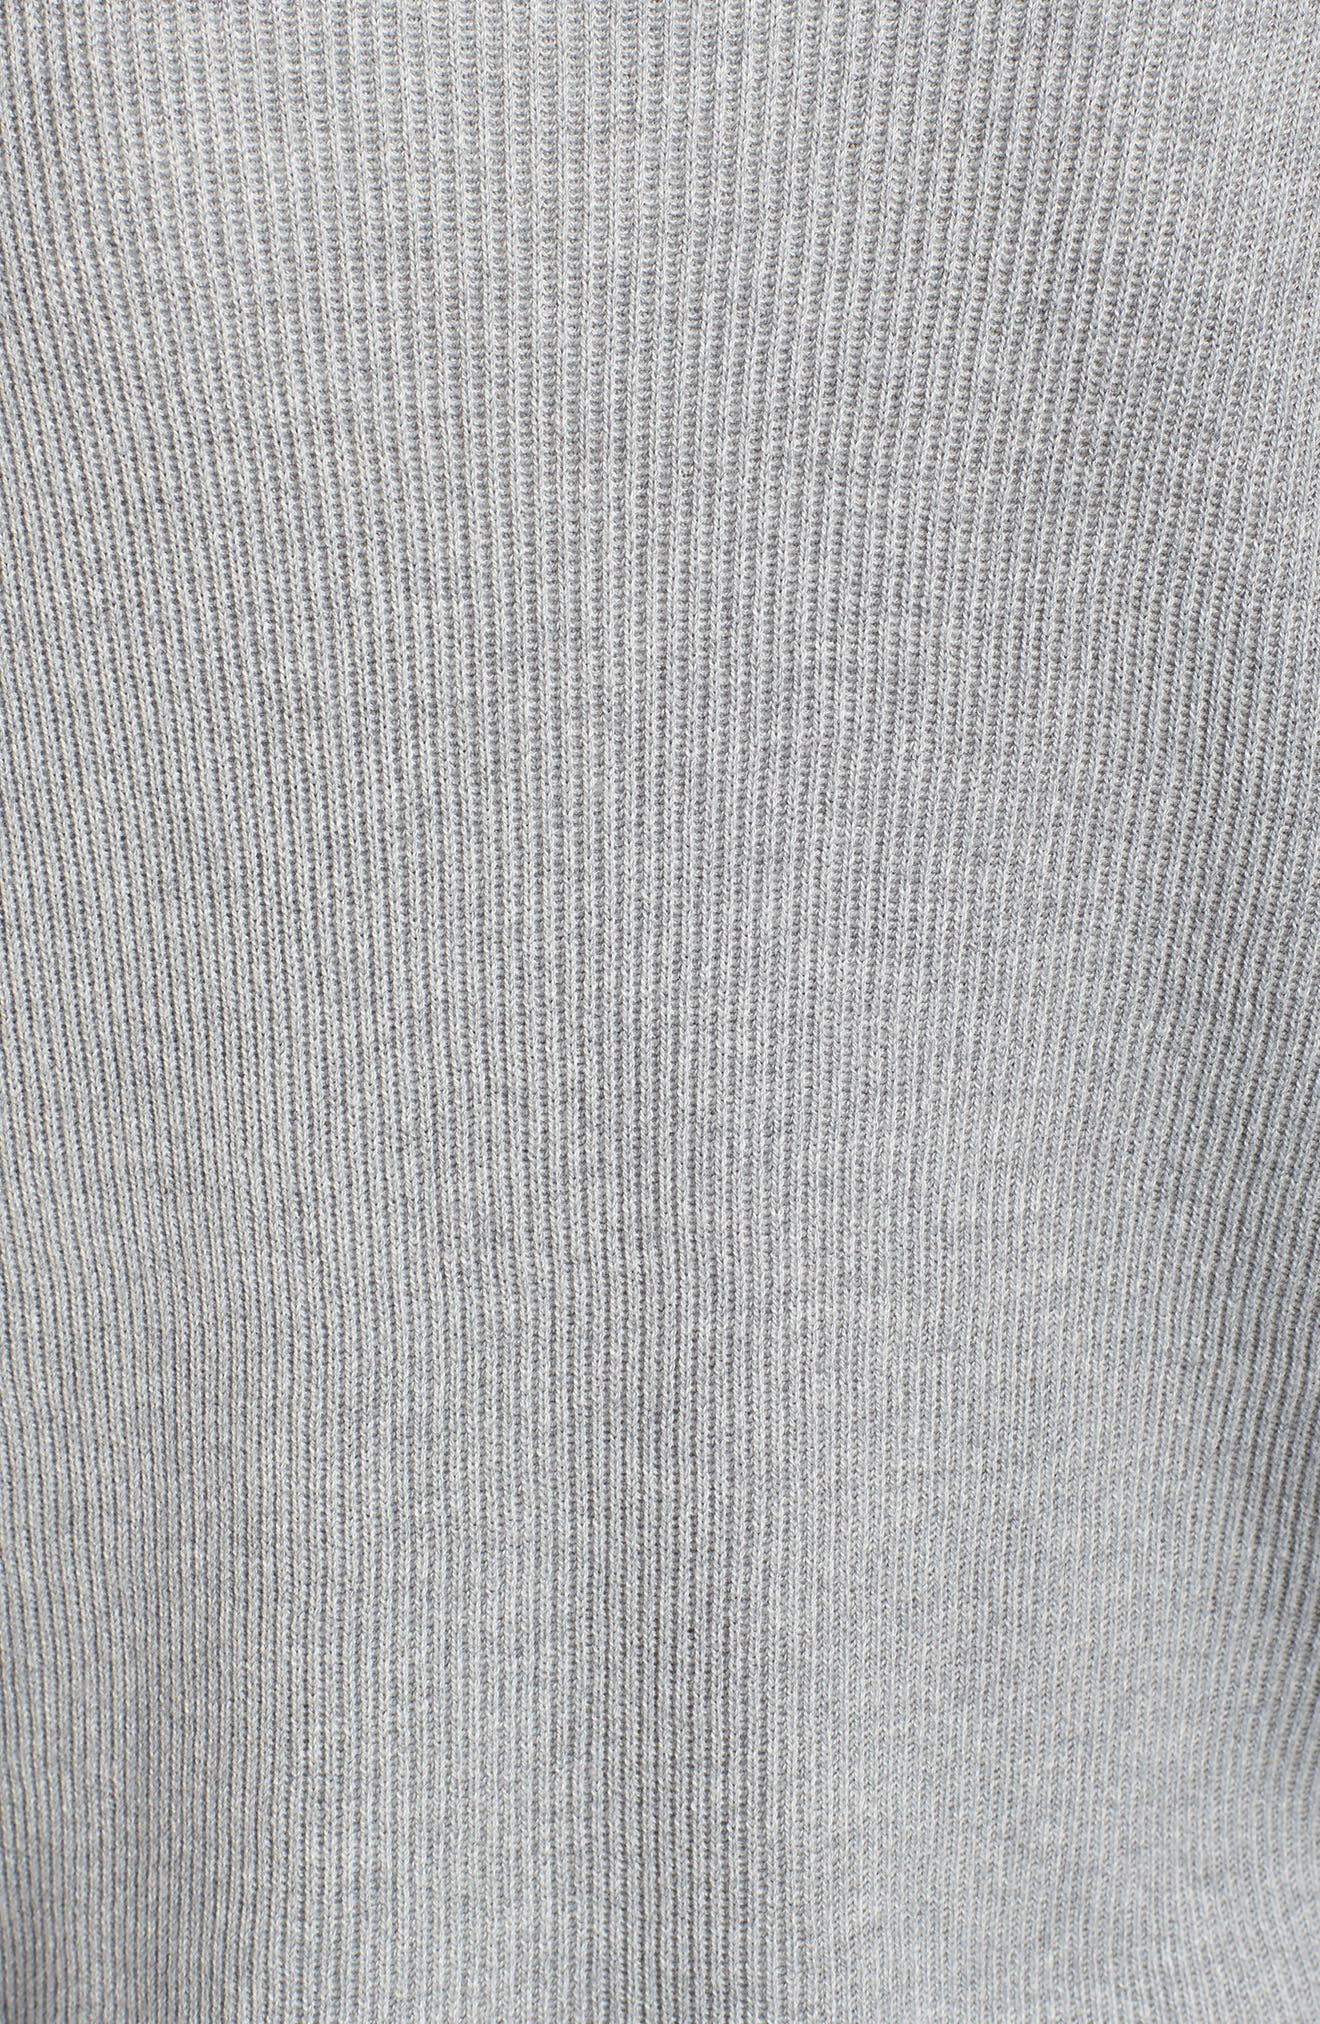 Veronica Lounge Pullover,                             Alternate thumbnail 9, color,